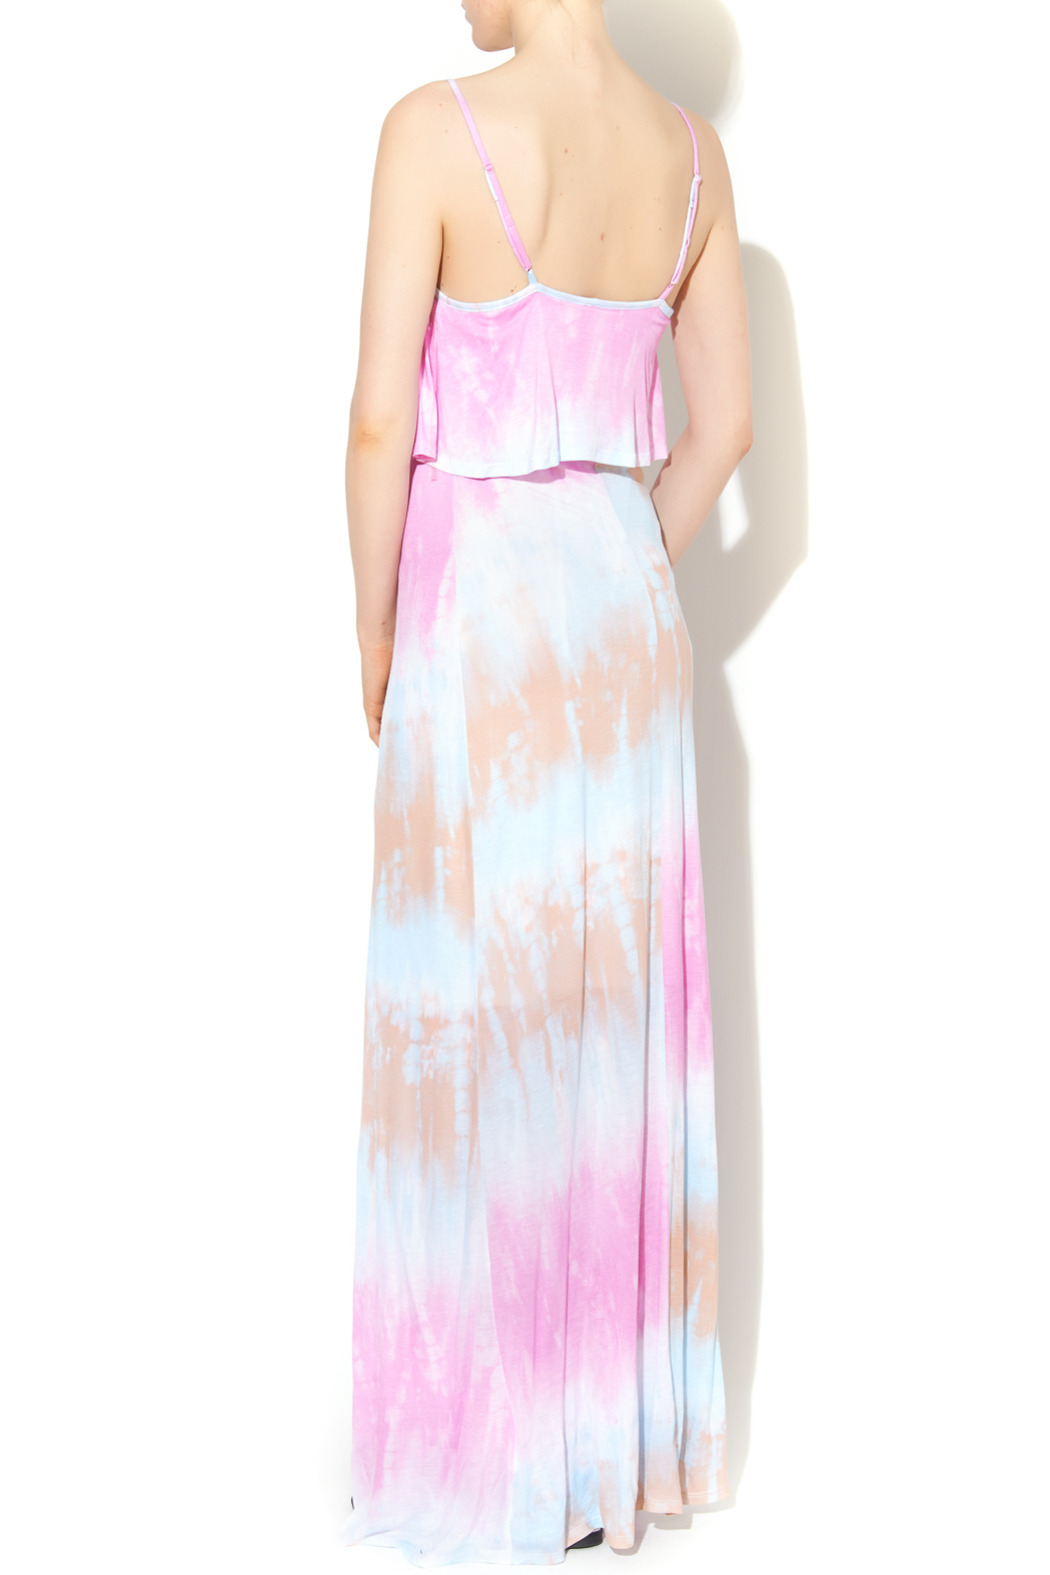 Mono B Pastel Tie Dye Maxi From Florida By Abby Taylor Shoptiques